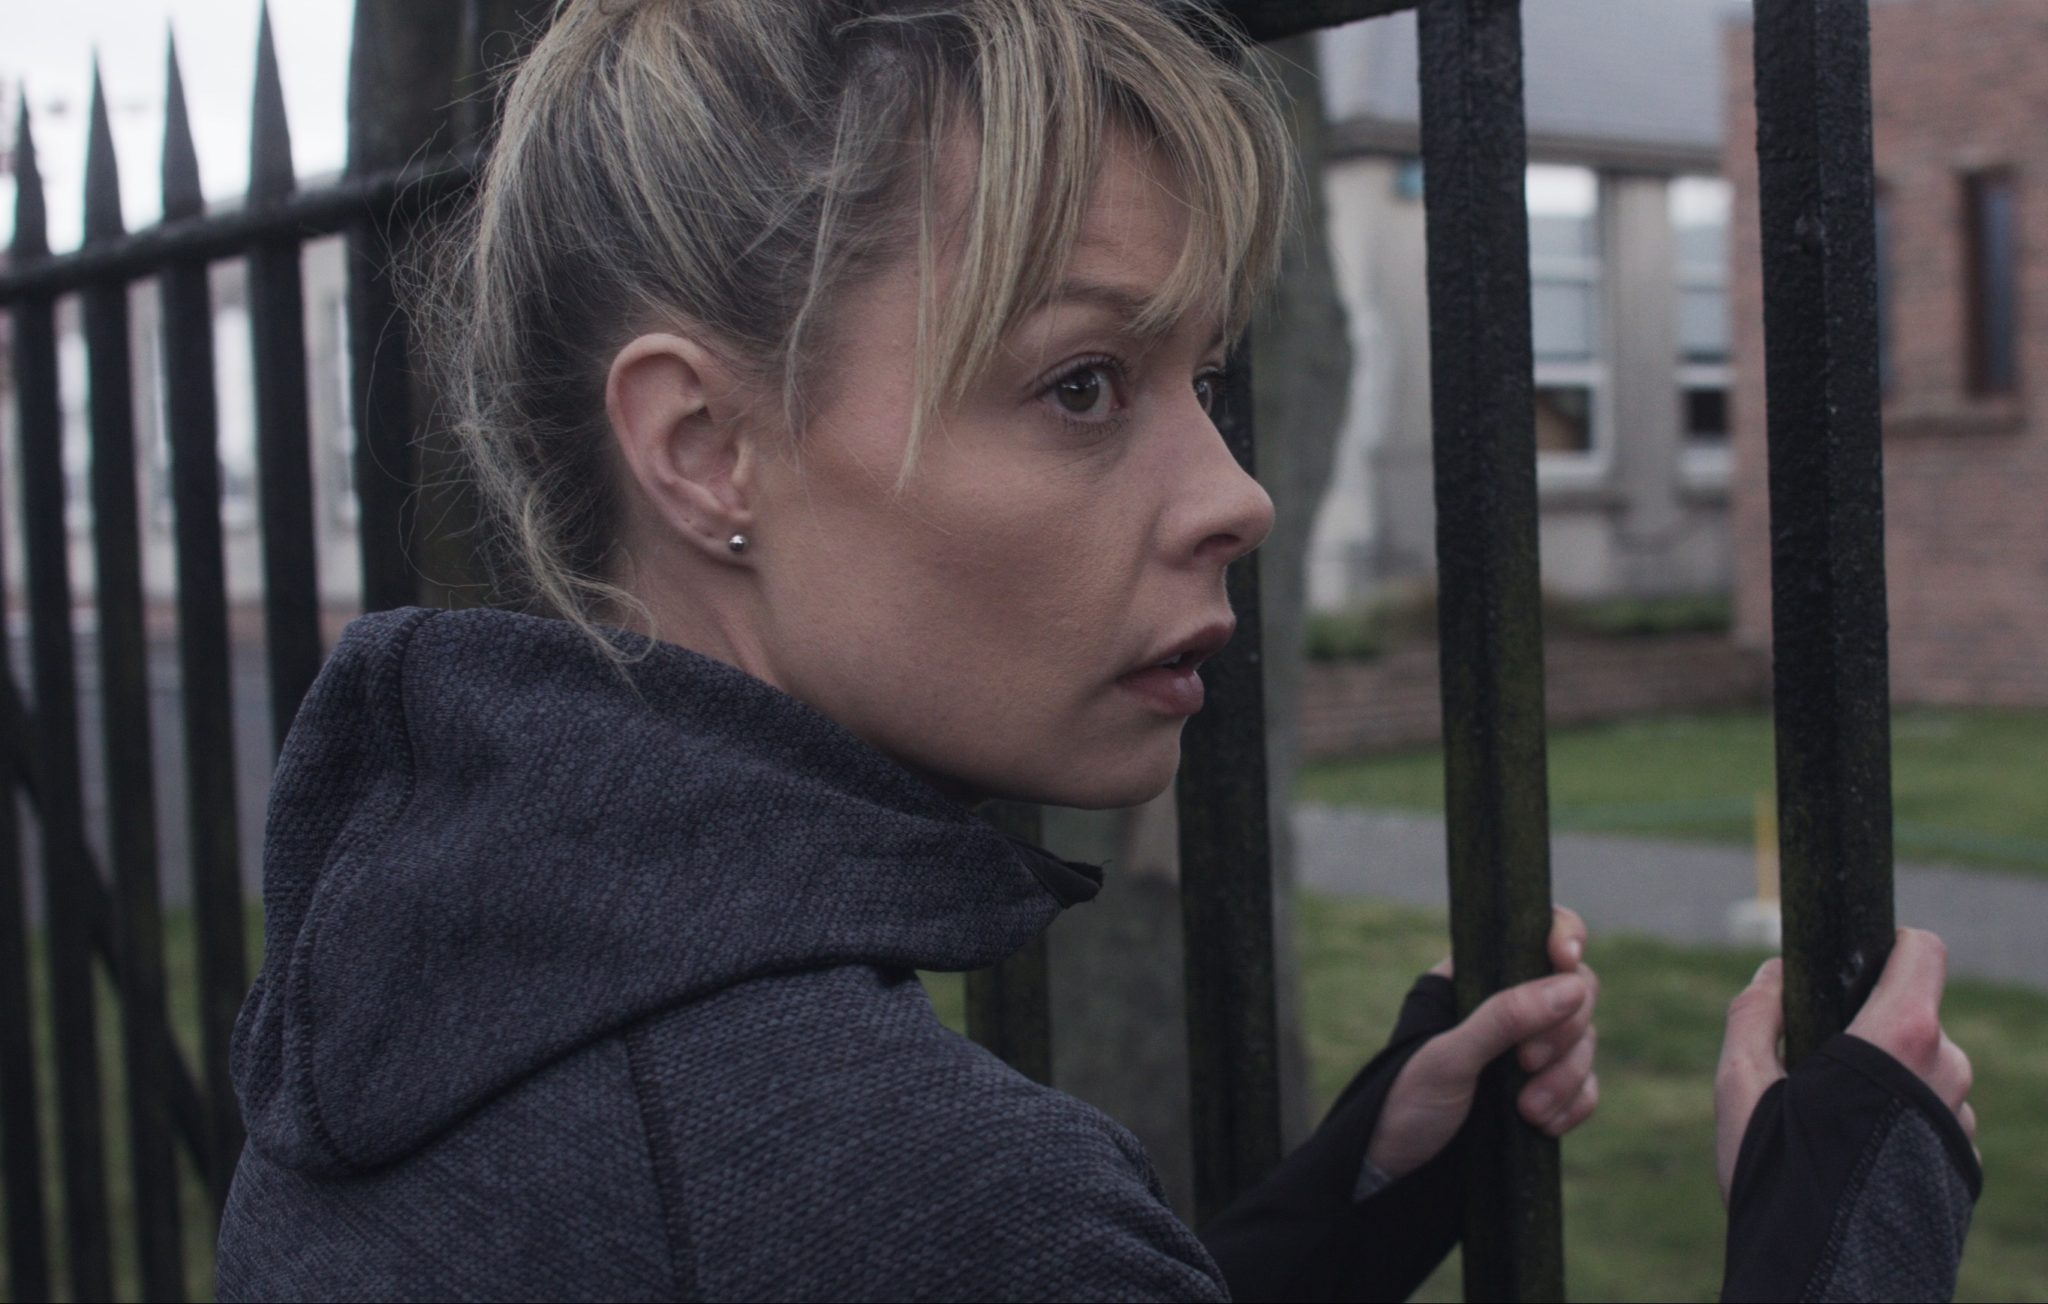 Lydia McGuinness in the film Spent